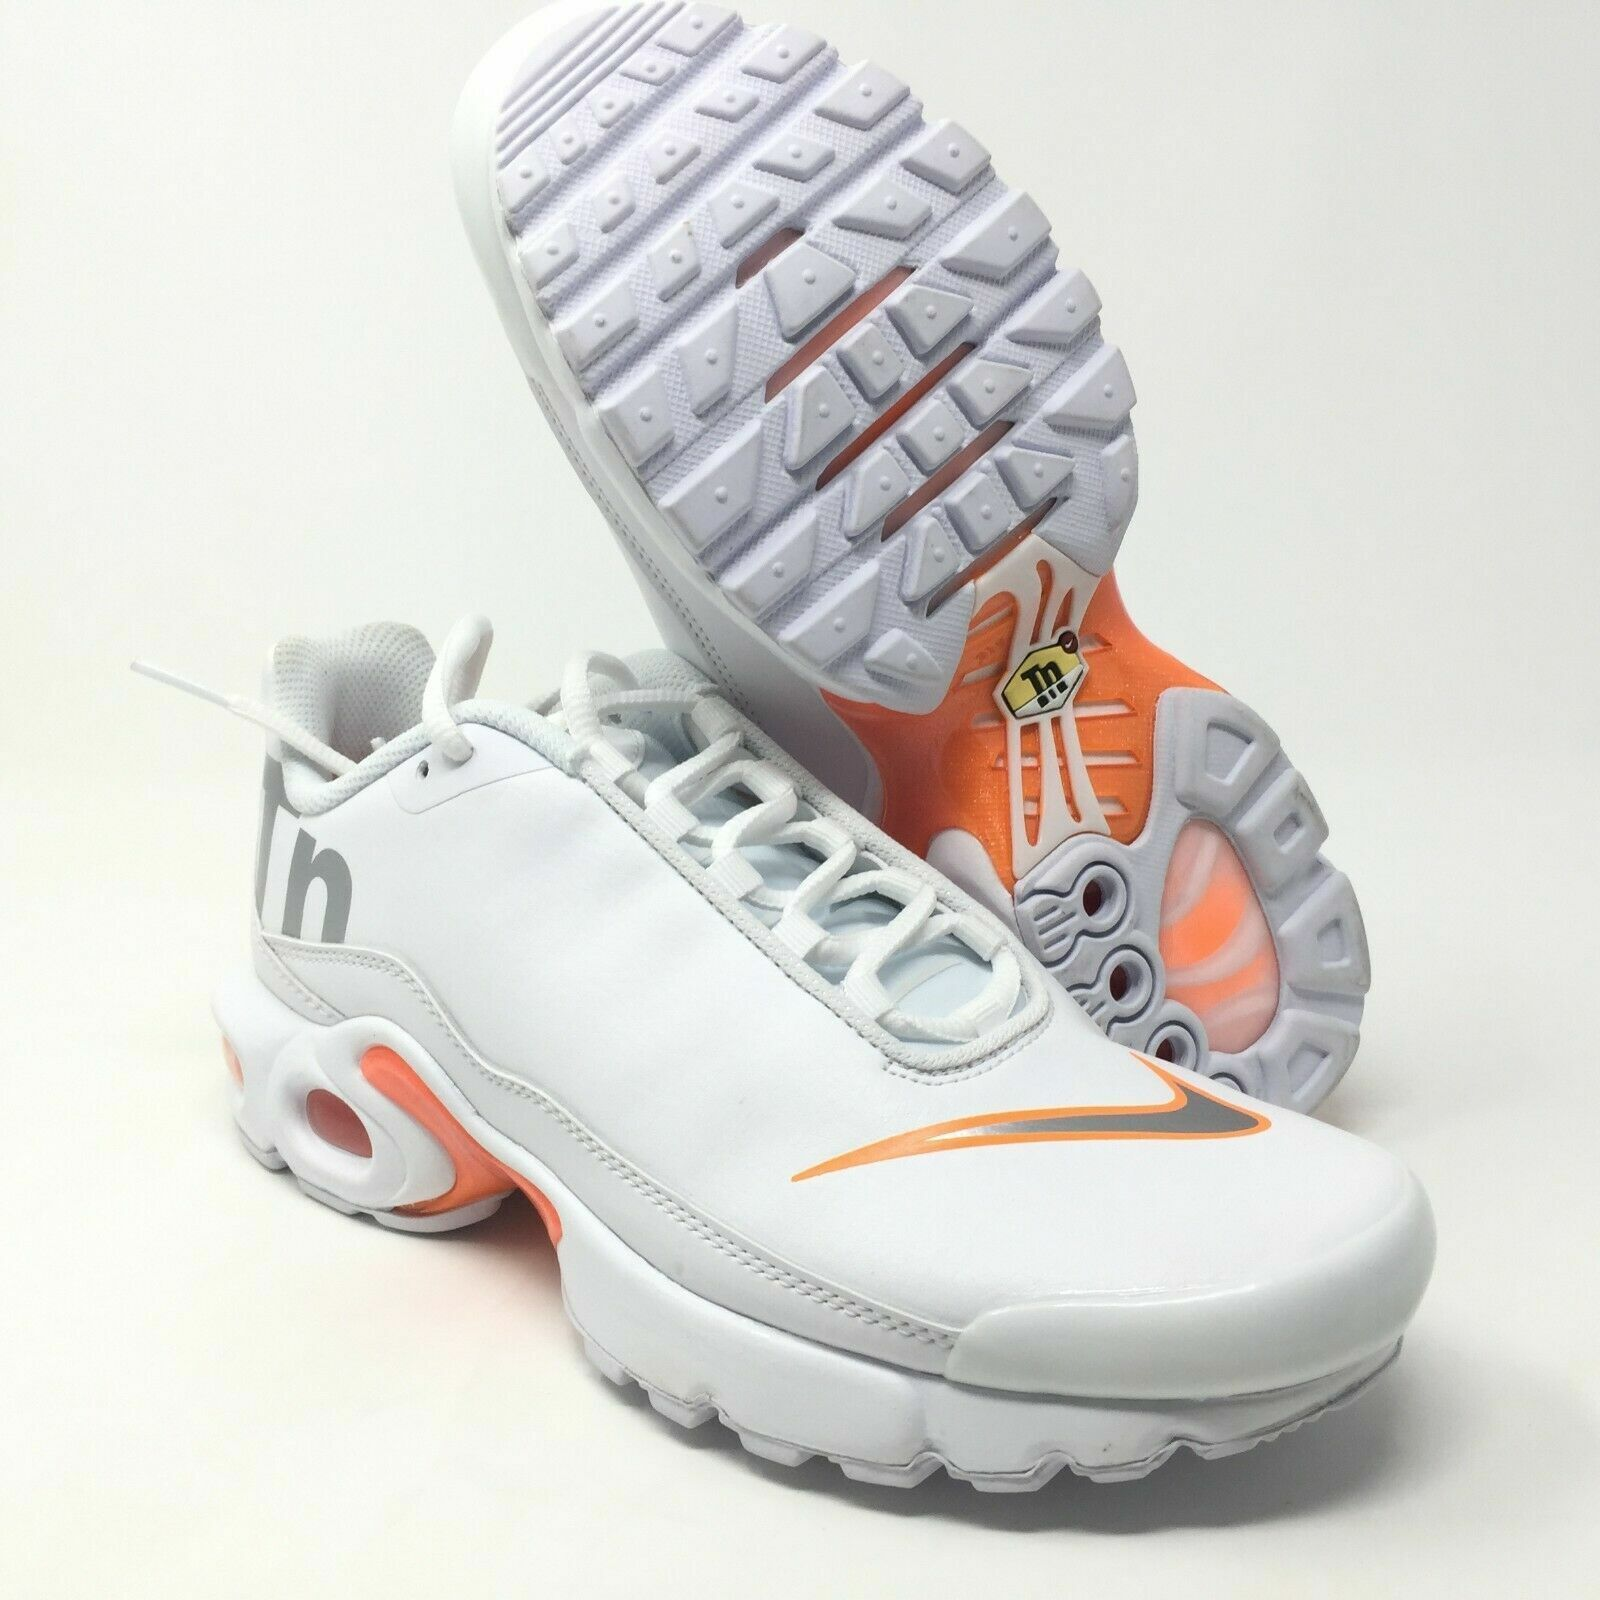 innovative design 1afc9 7b2c9 Details about Nike Air Max Plus TN SE GS White Orange AR0005-100 Size 5.5Y  Women's 7